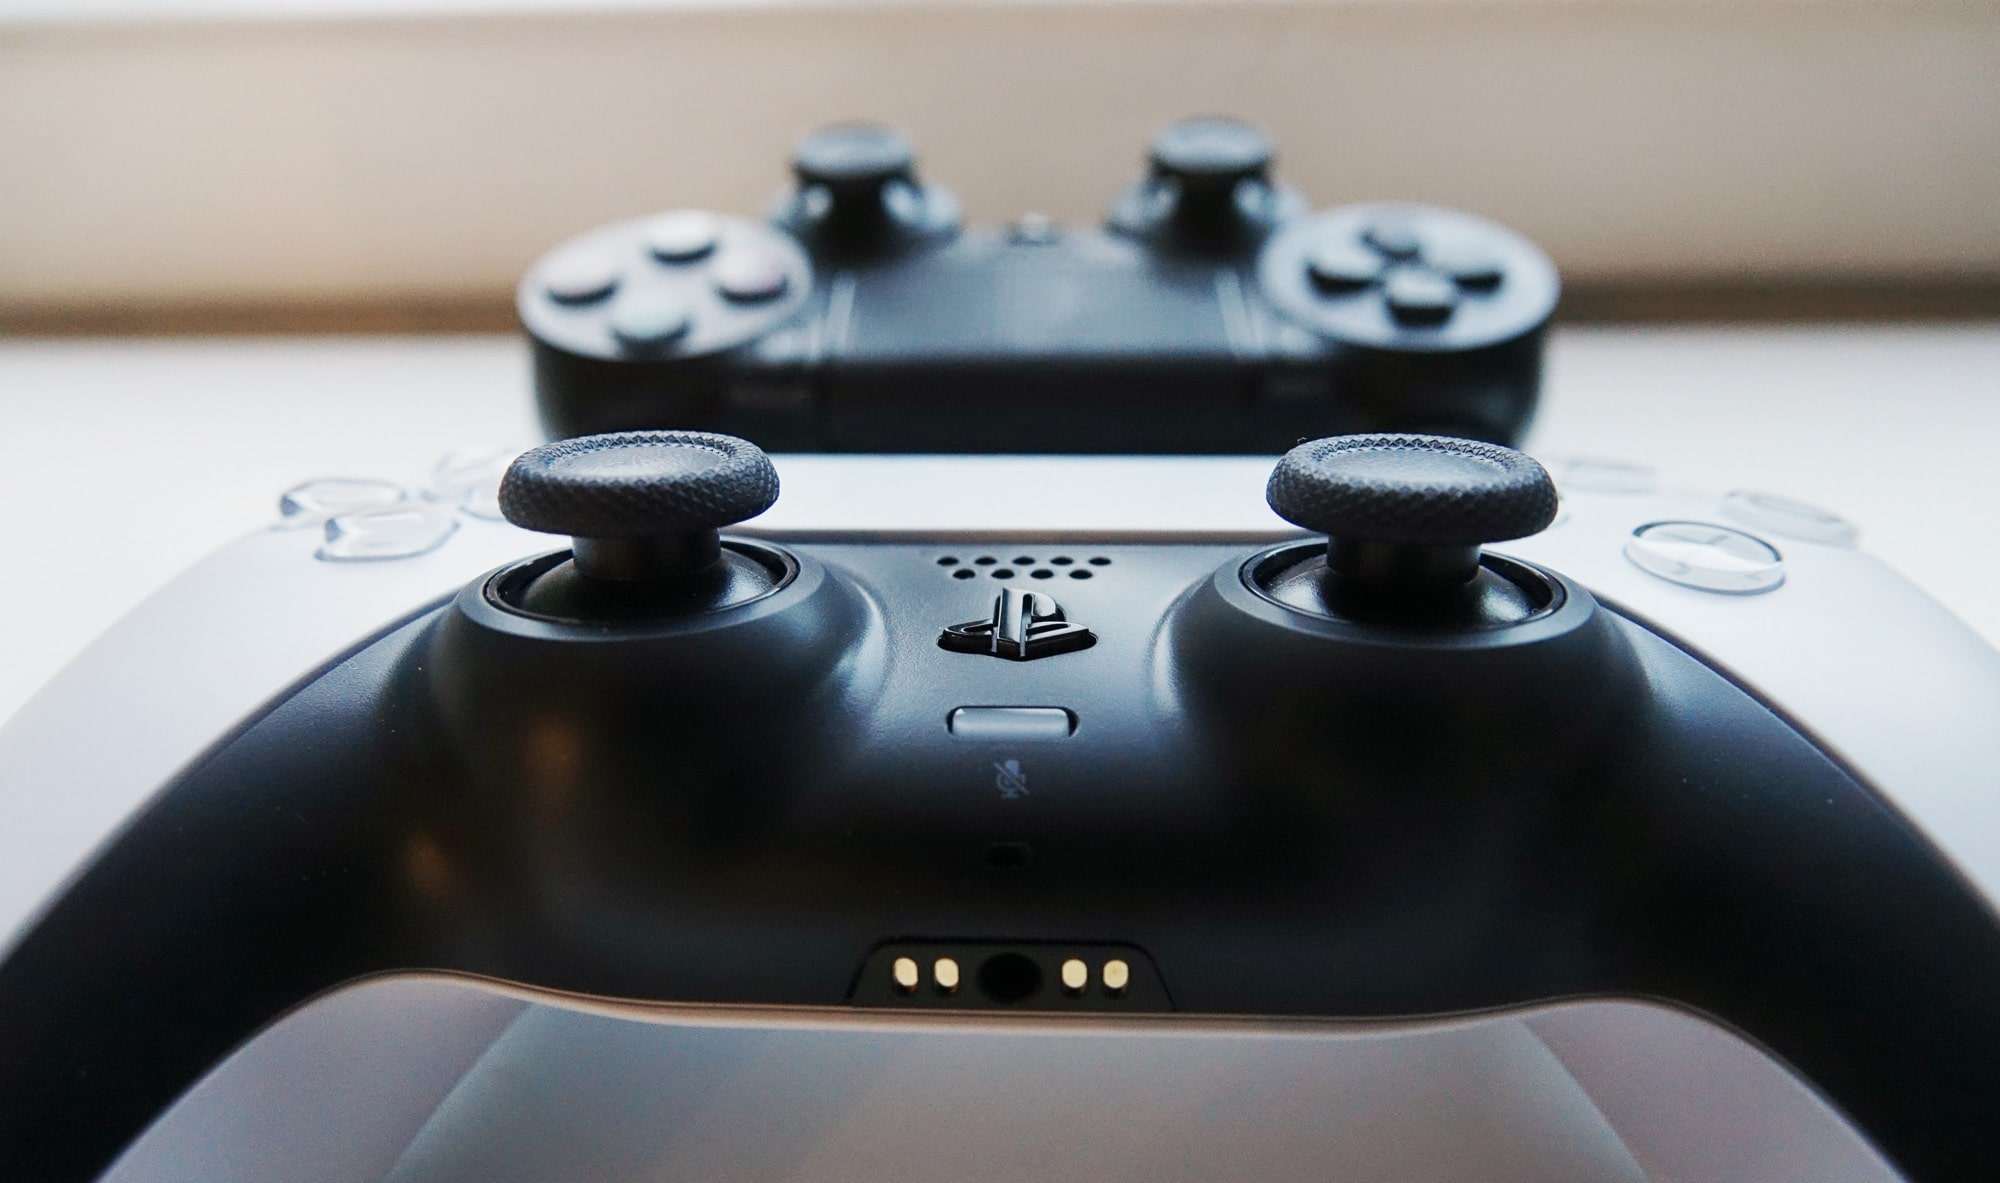 A PS5 controller in front of a PS4 controller